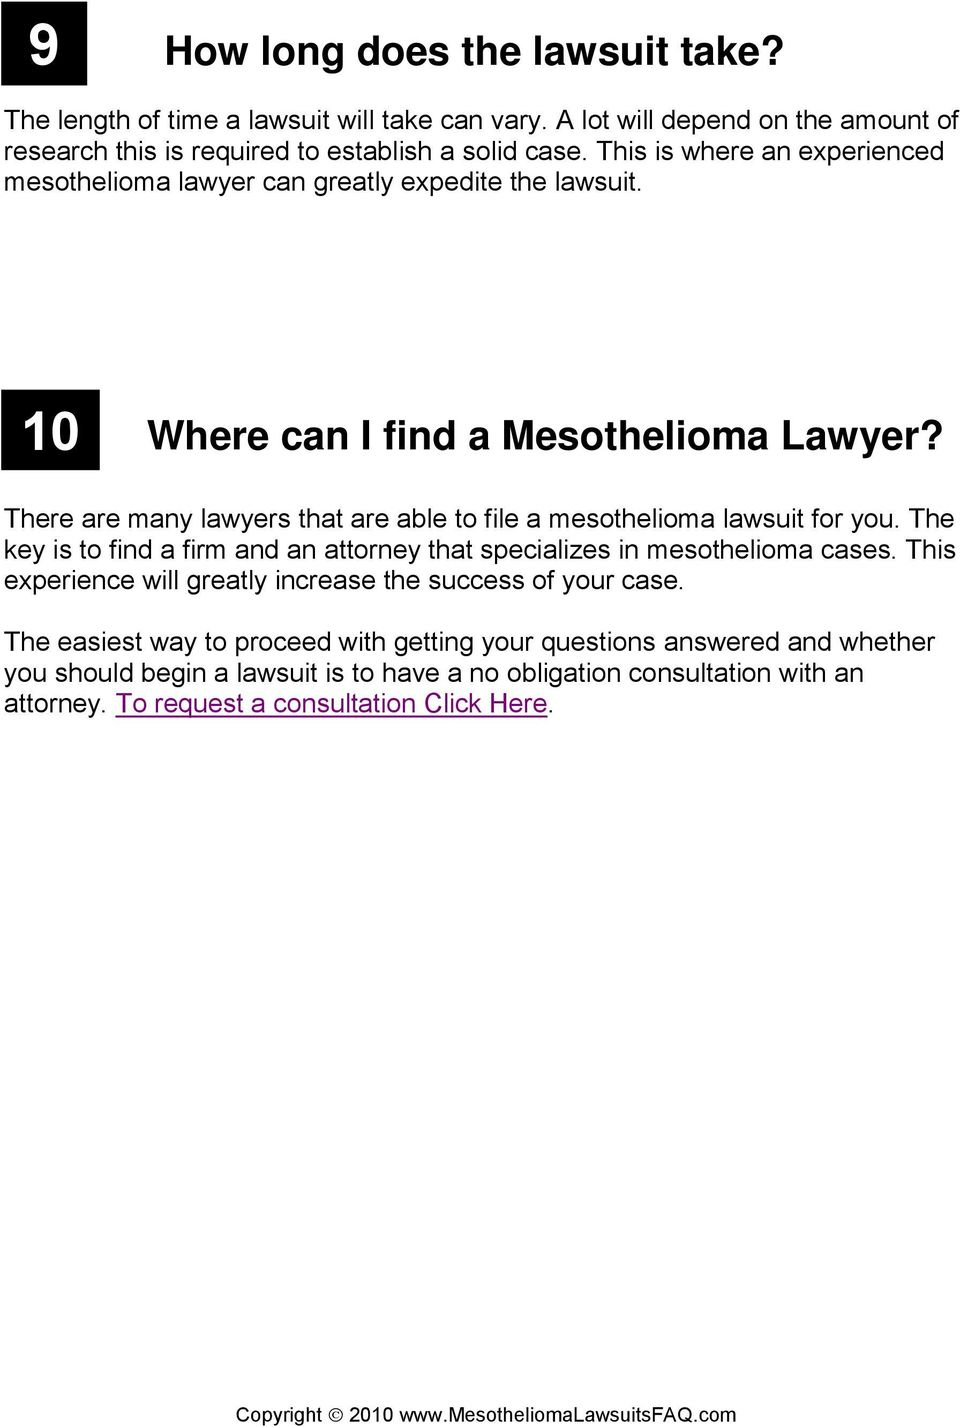 There are many lawyers that are able to file a mesothelioma lawsuit for you. The key is to find a firm and an attorney that specializes in mesothelioma cases.